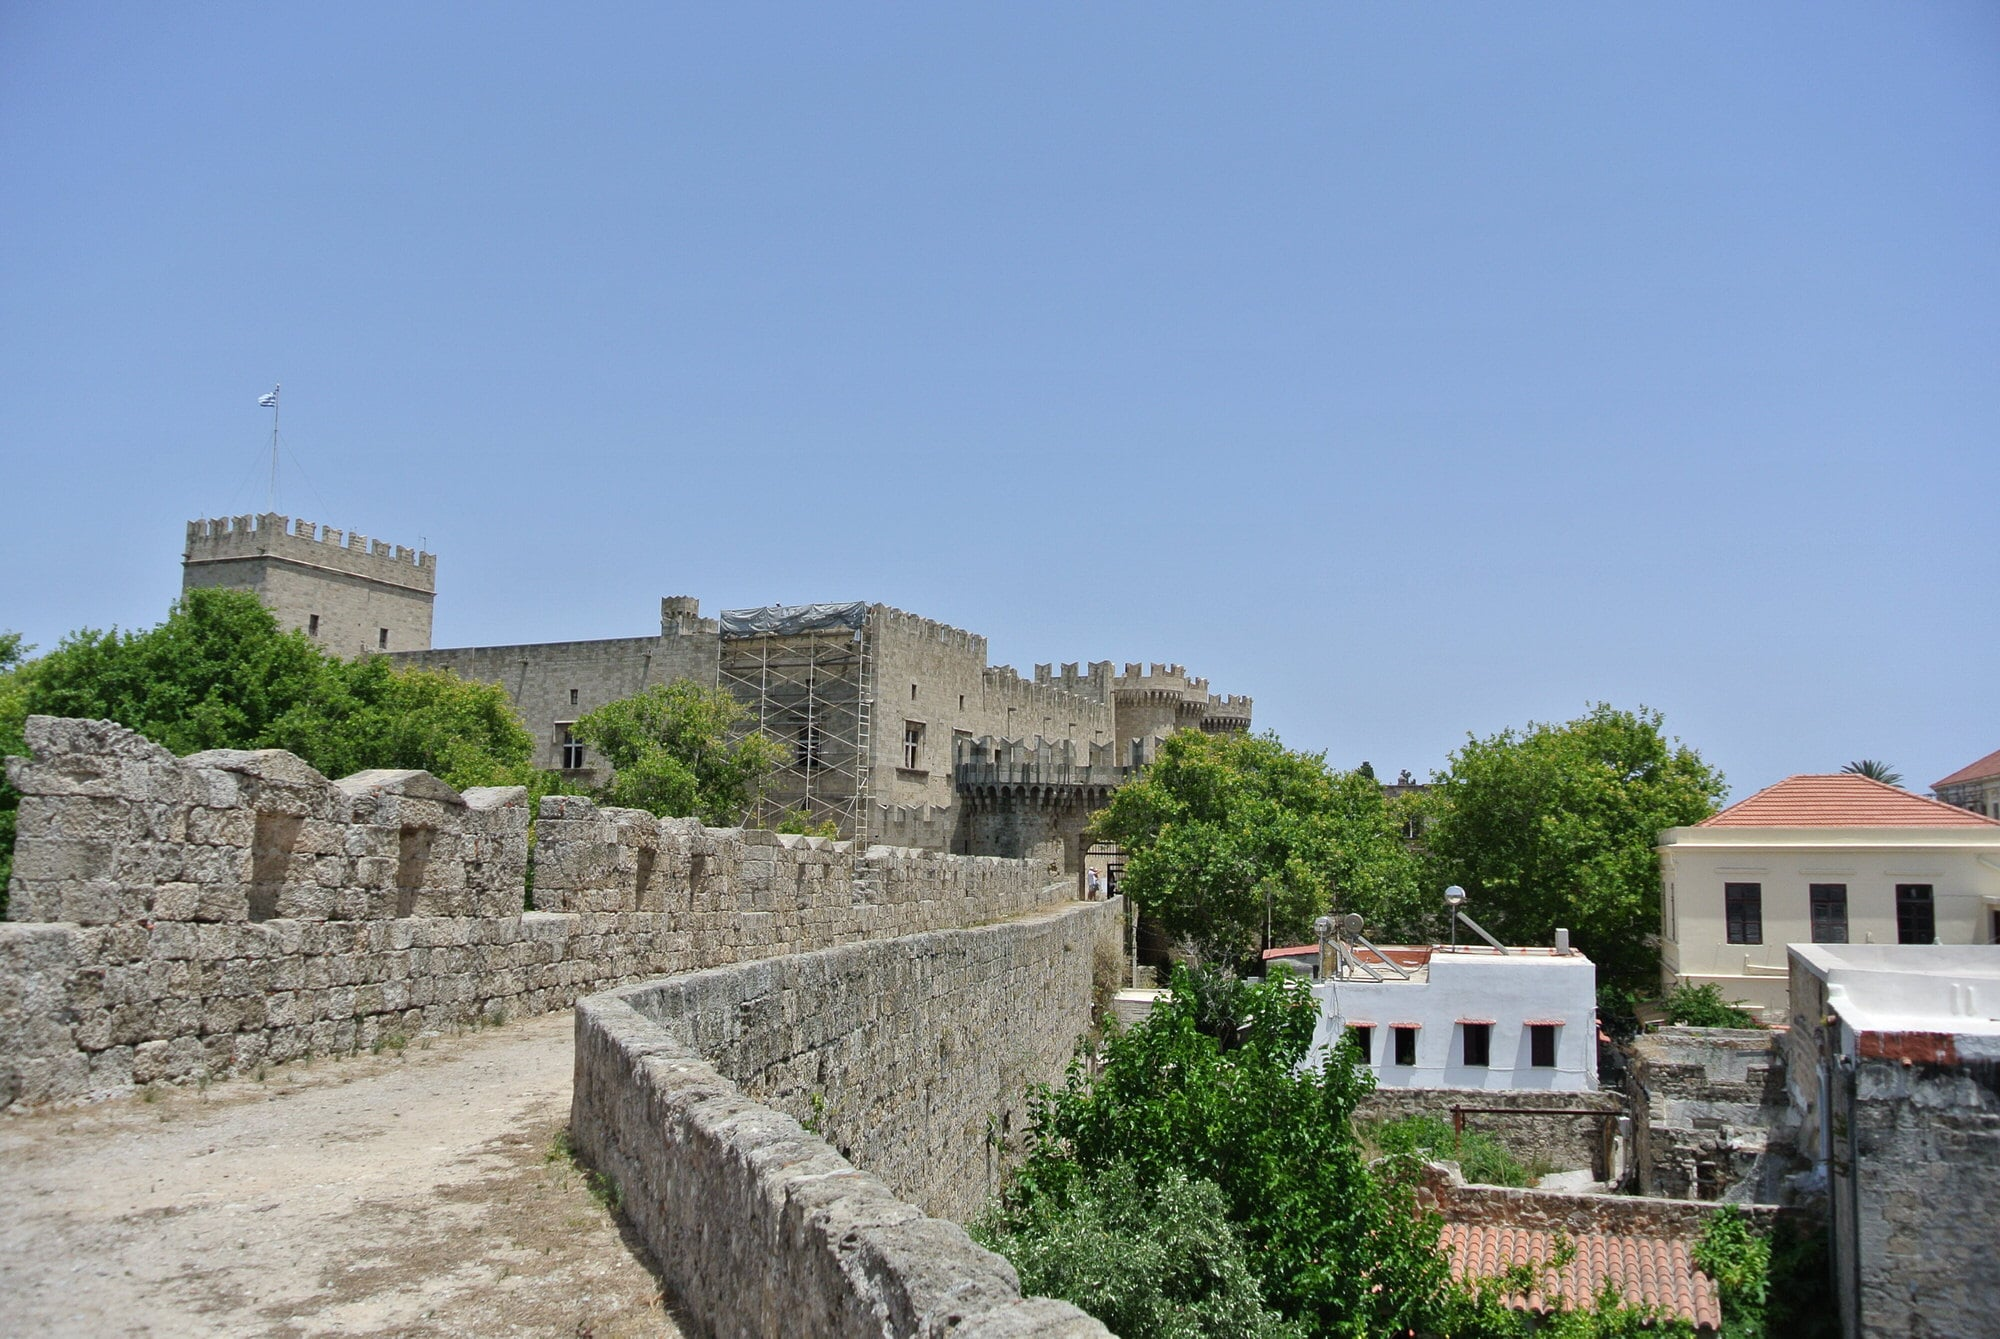 Rhodes Old City Walls and Palace of the Knights